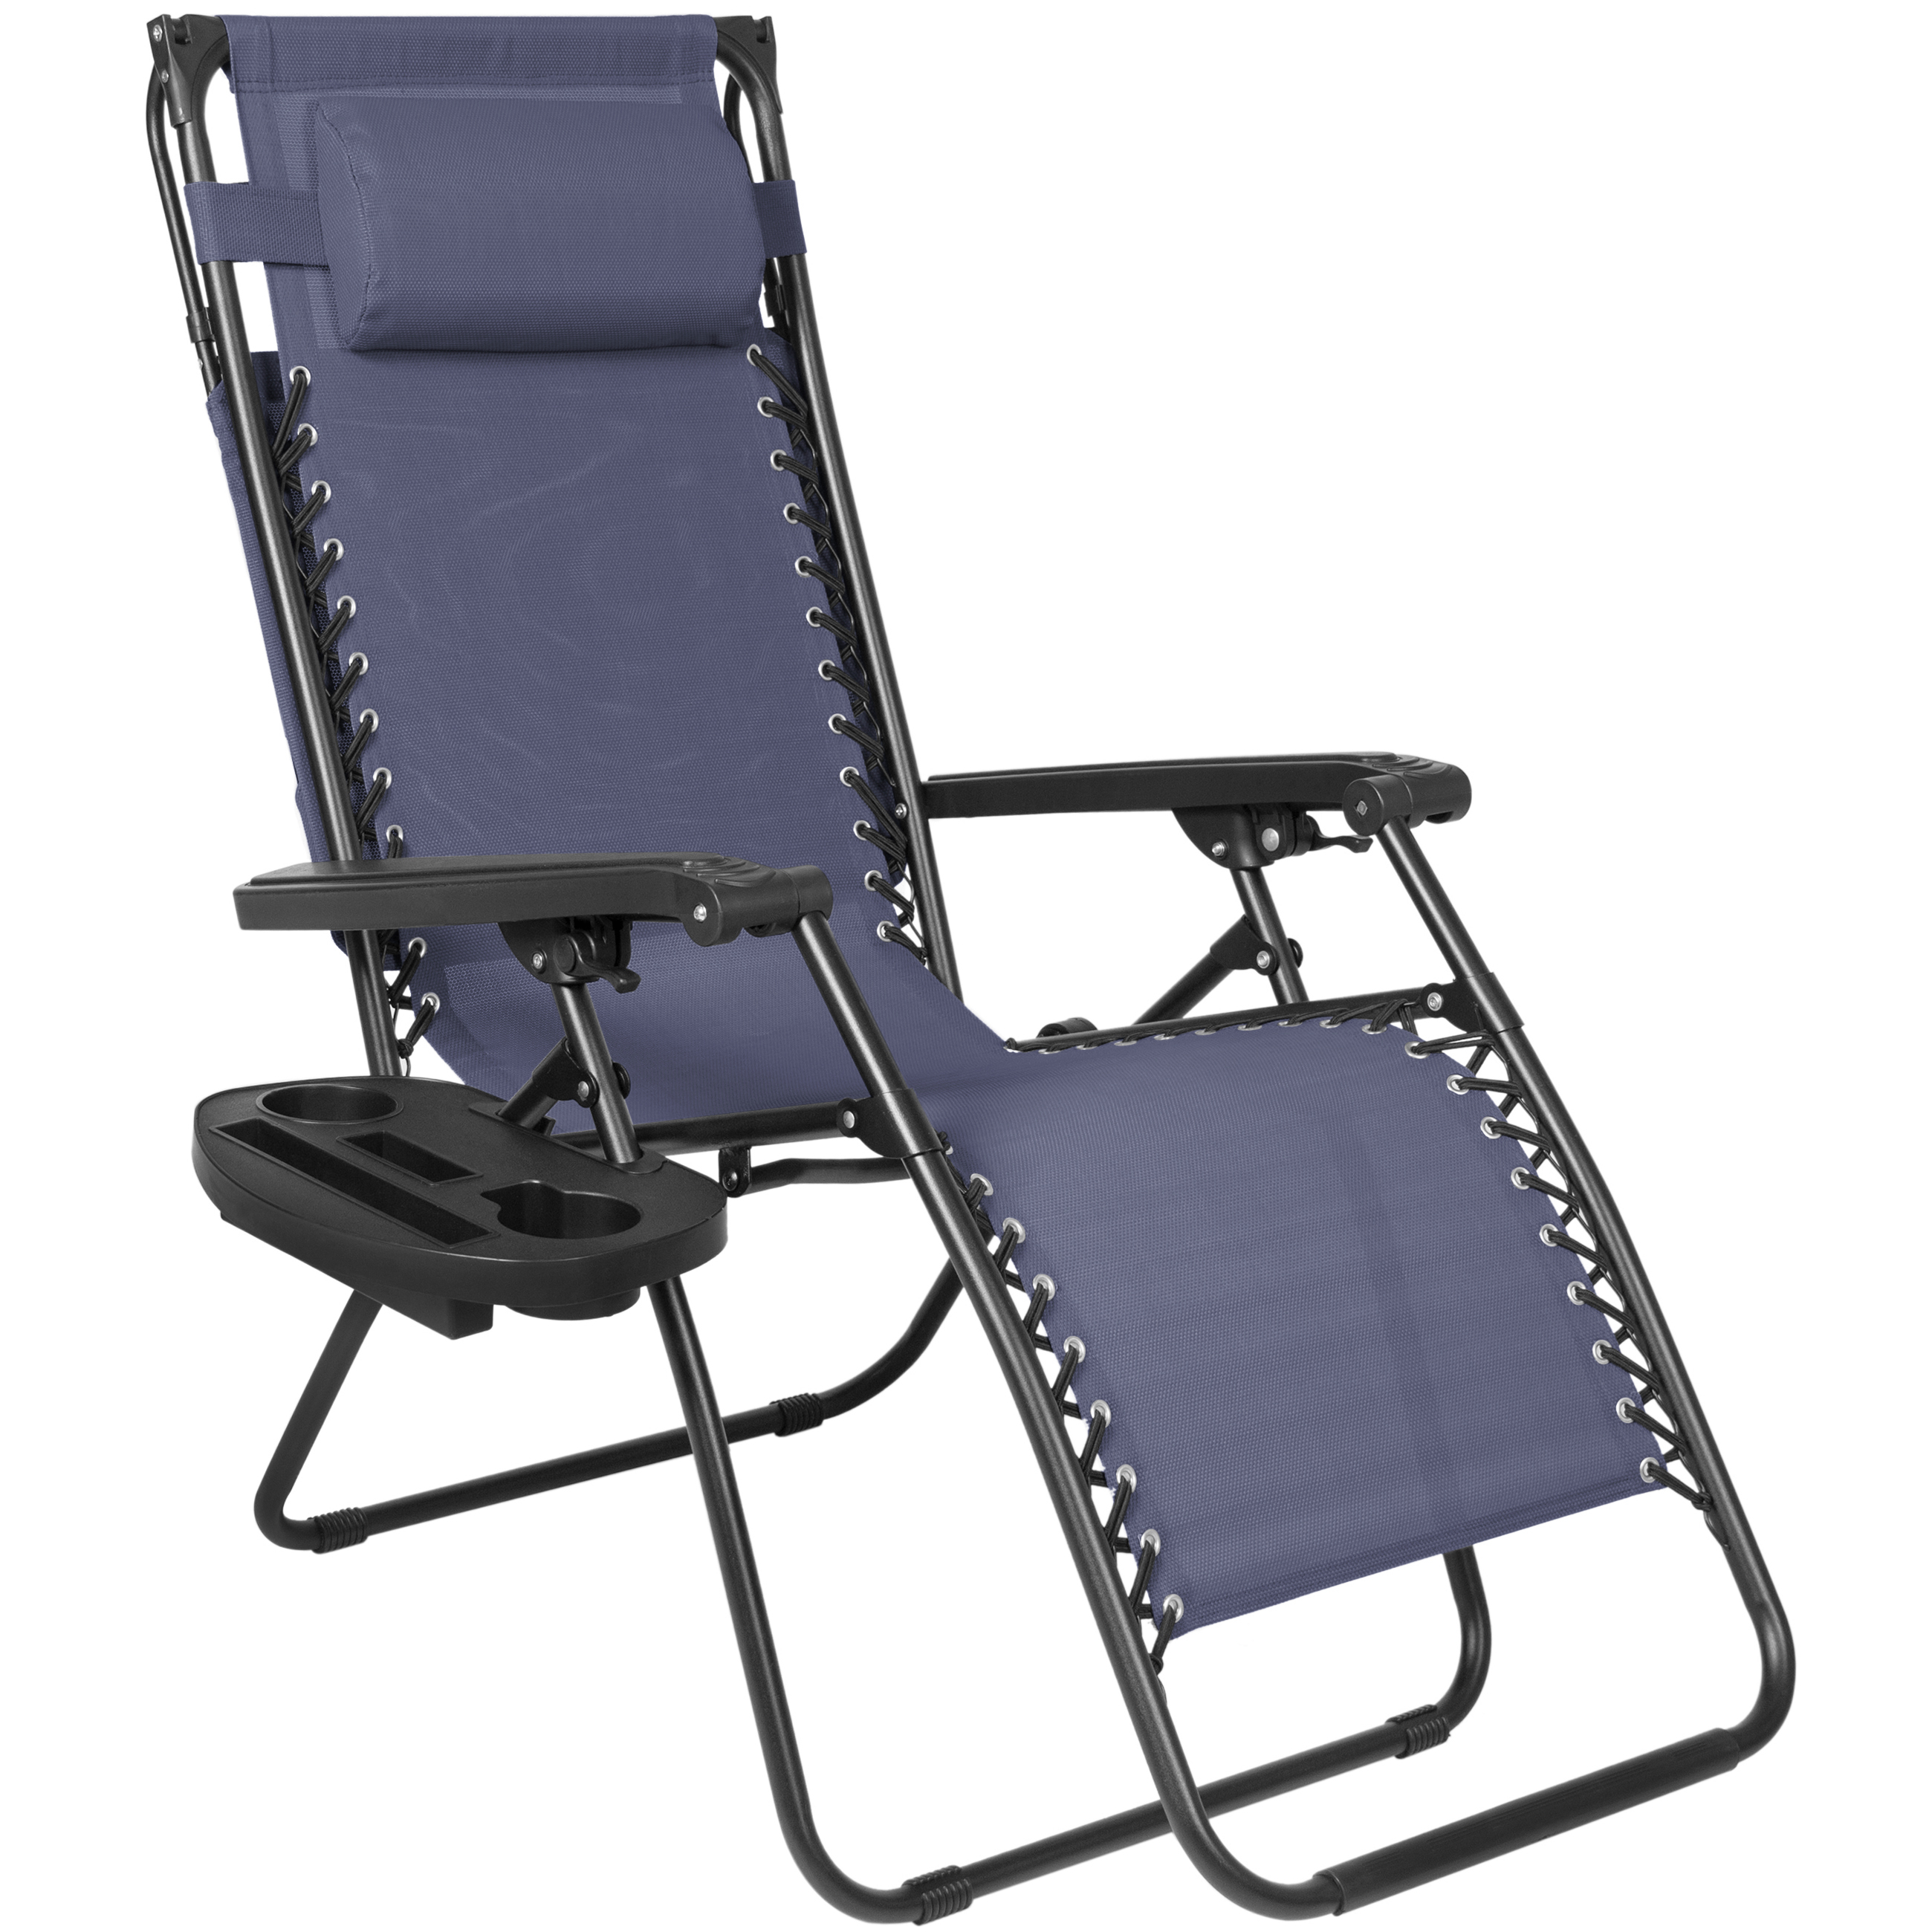 Indoor Zero Gravity Chair Folding Zero Gravity Recliner Lounge Chair W Canopy Shade